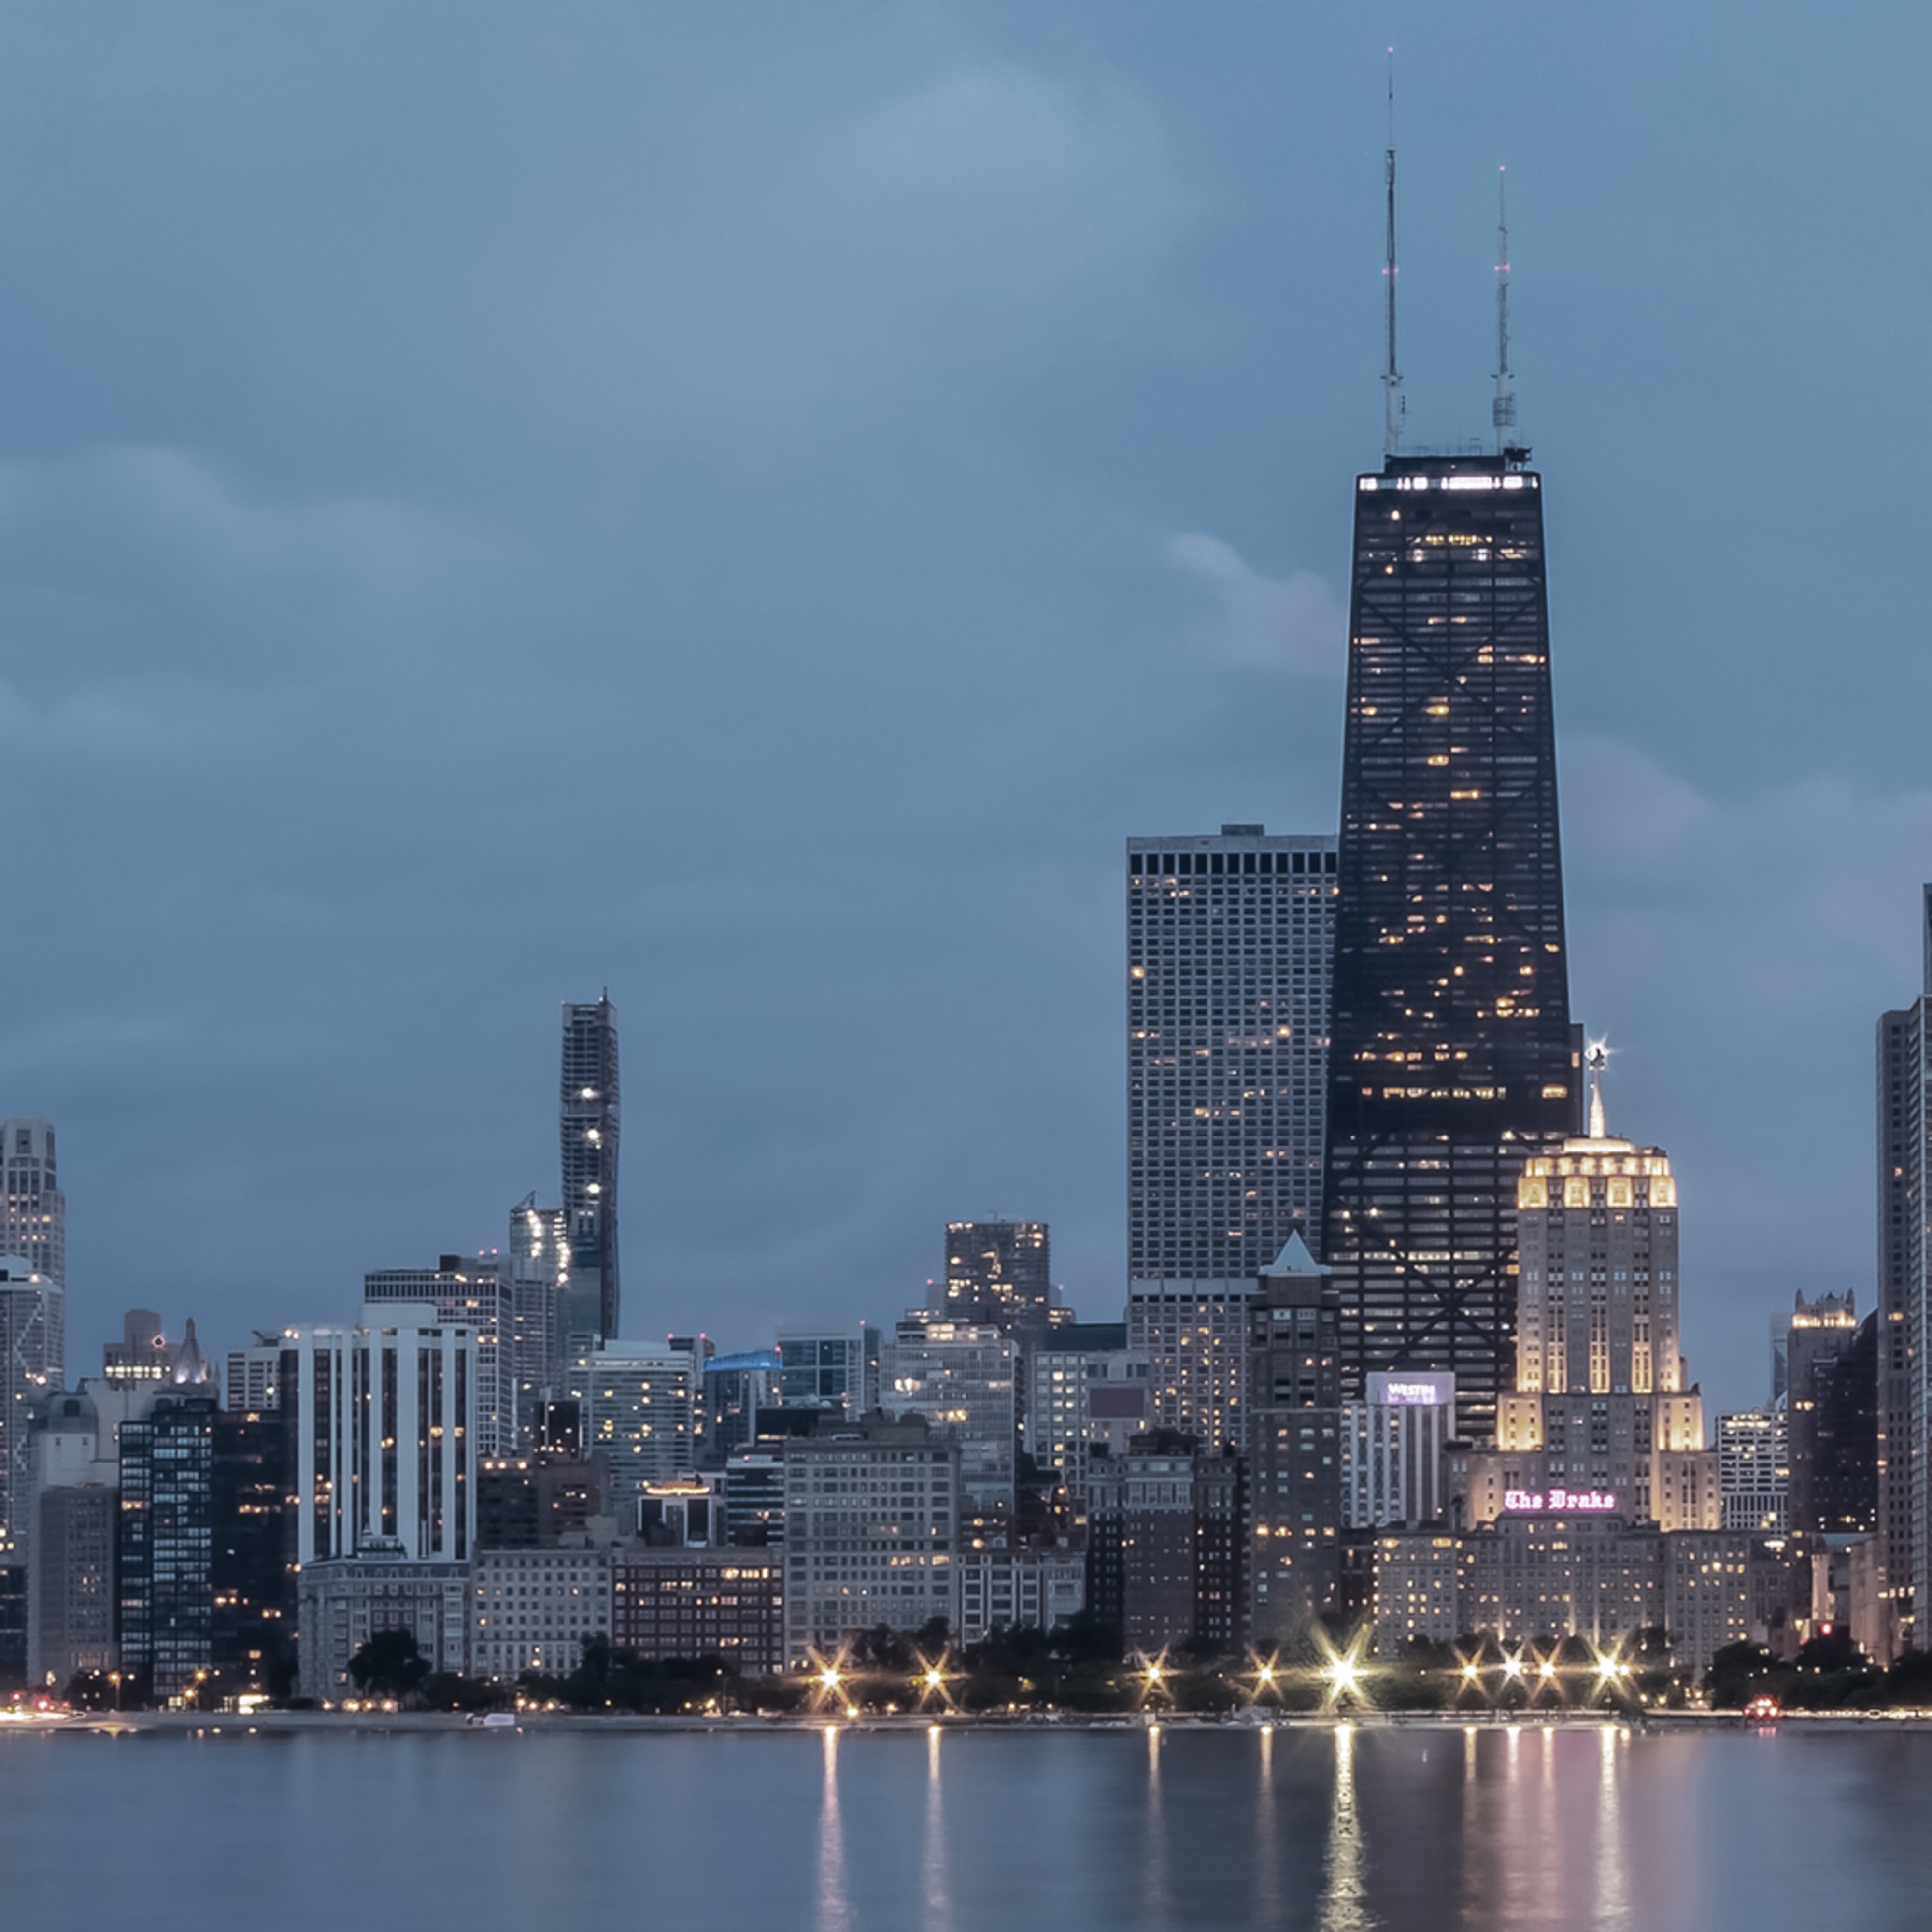 Stormy chicago skyline 3 2 s0qrbw